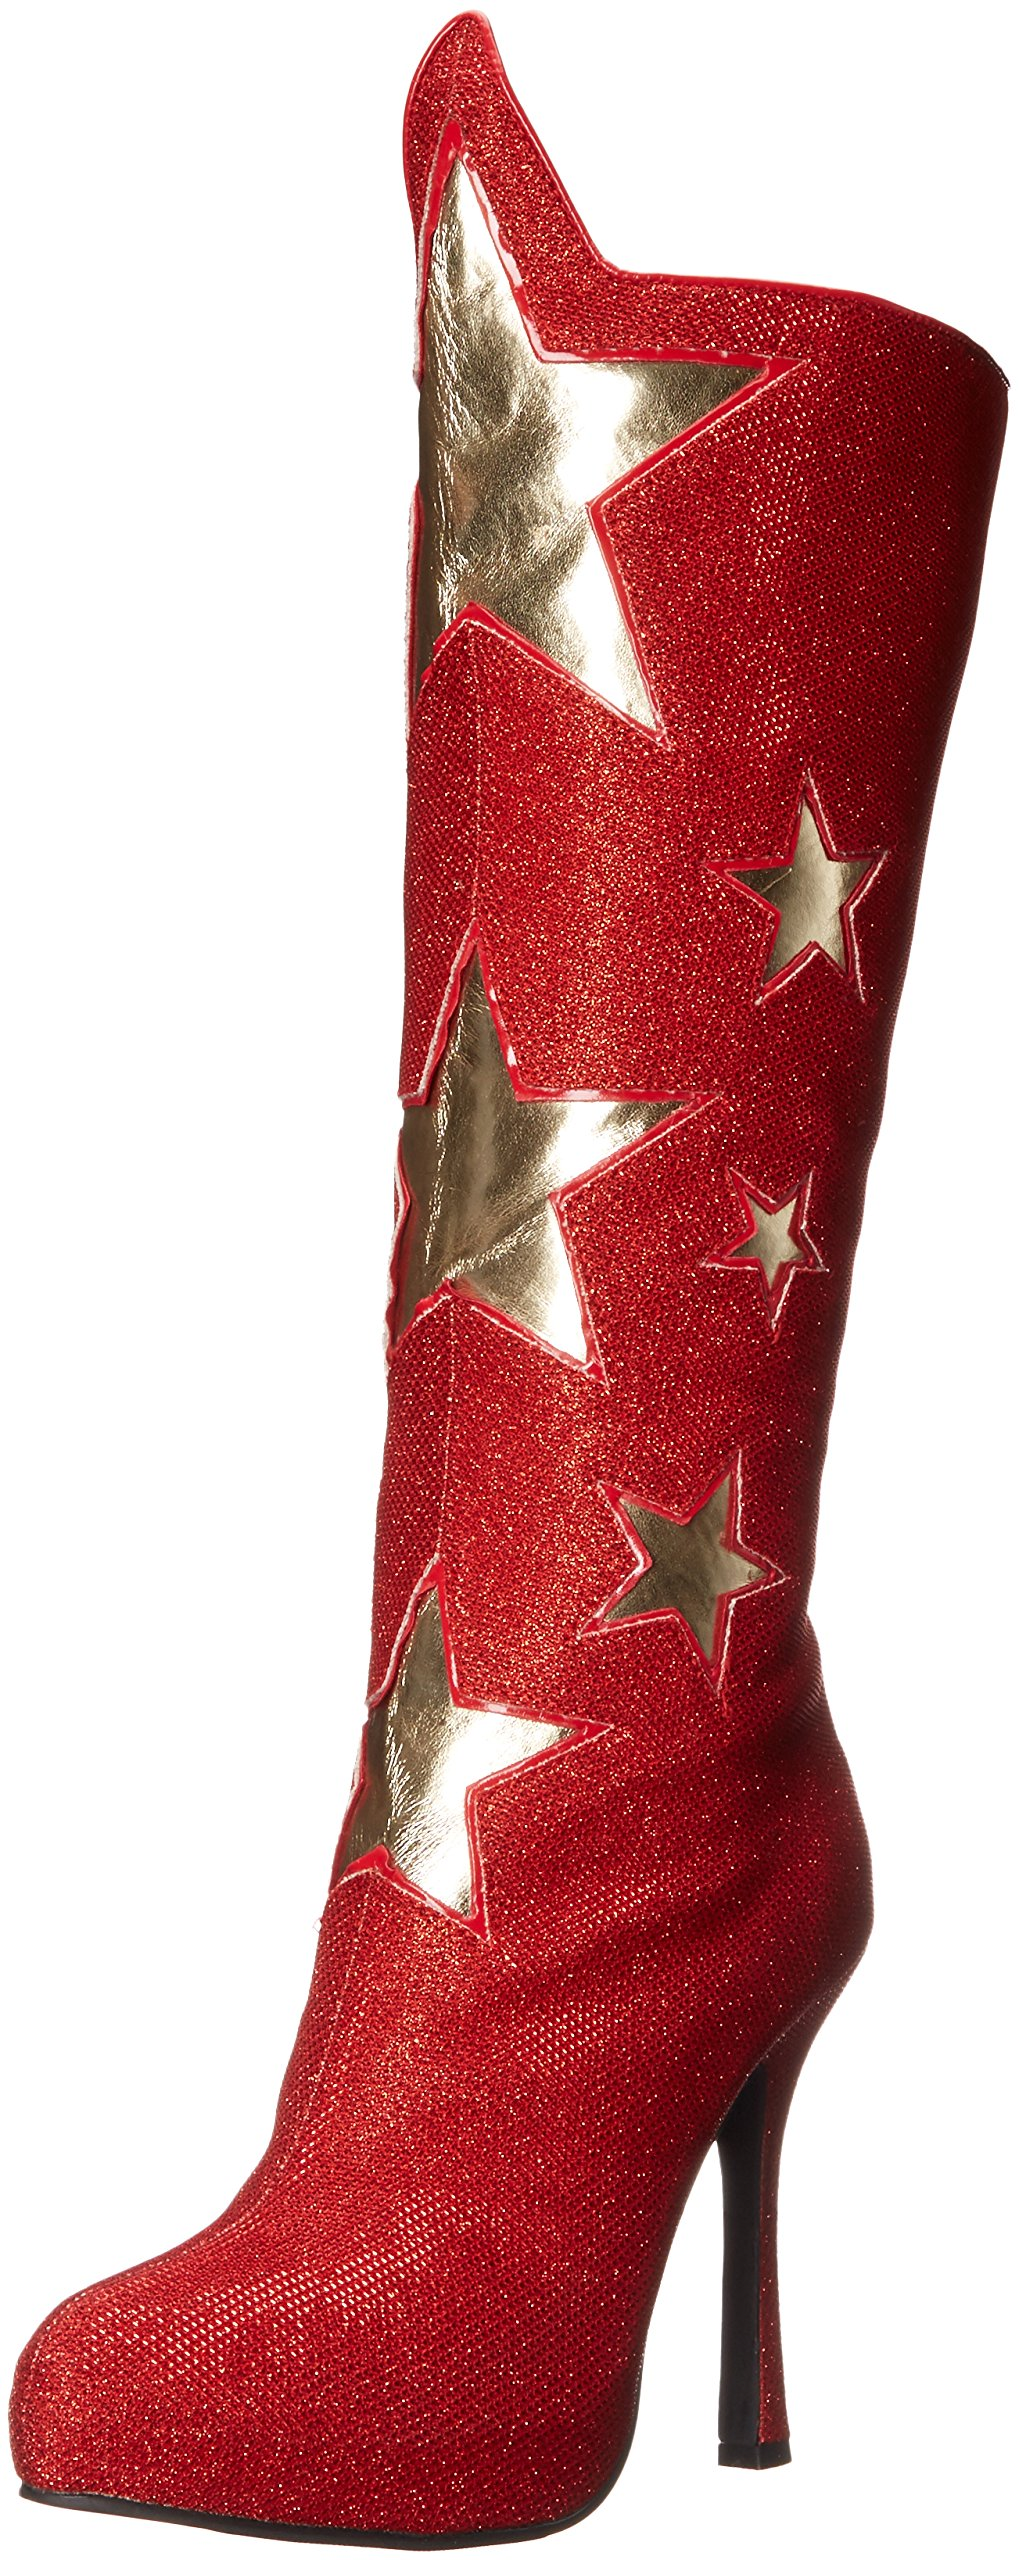 Ellie Shoes Women's 420-Hero Boot, Red, 9 M US